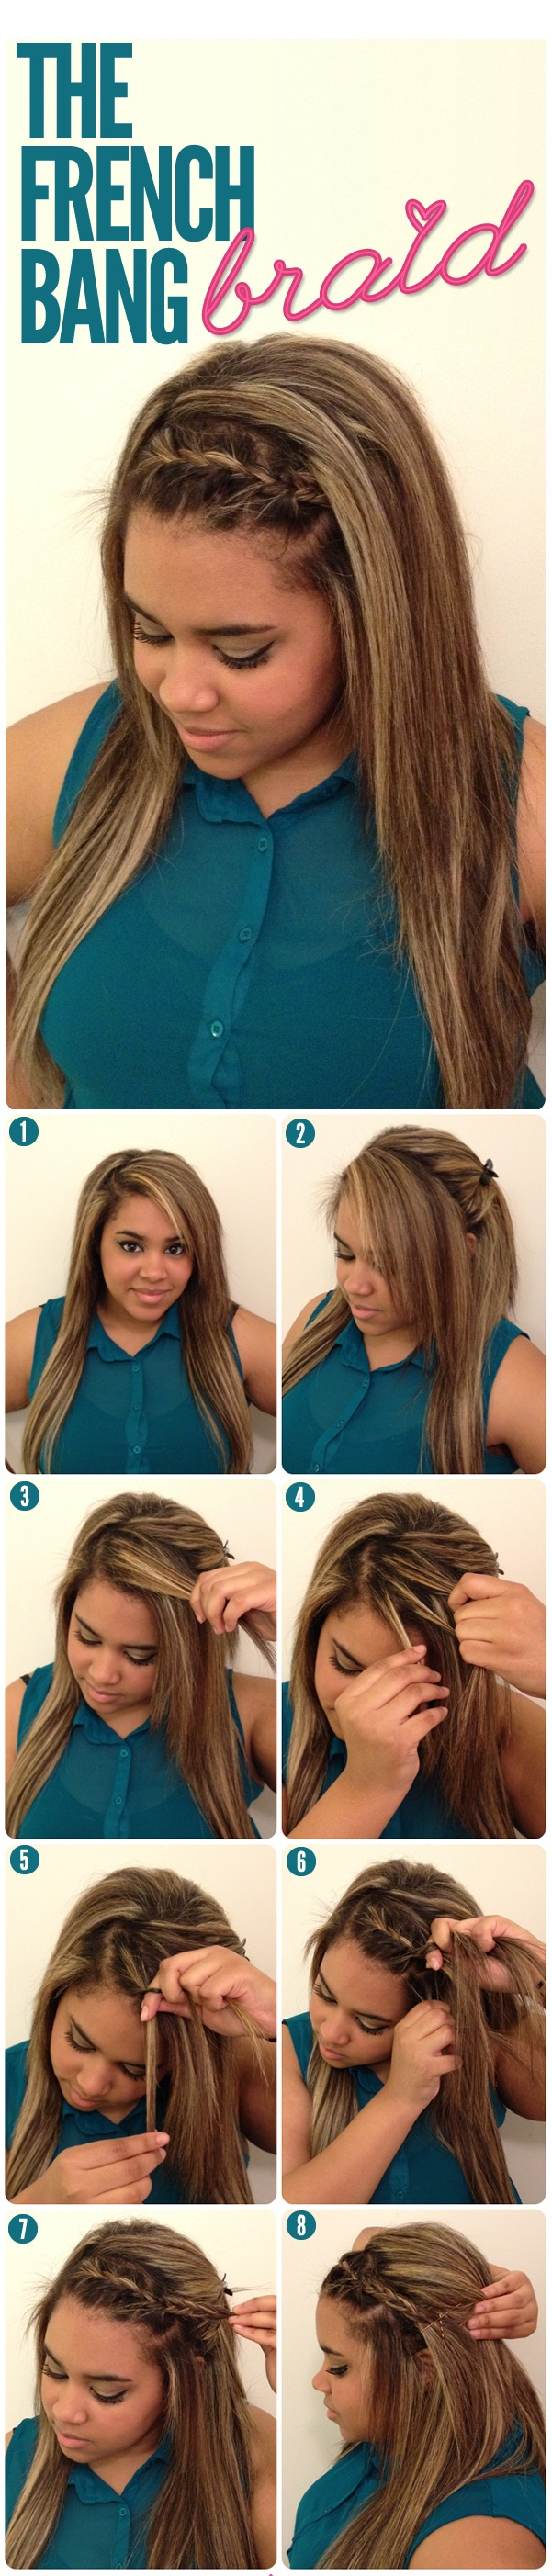 French Bang Braid